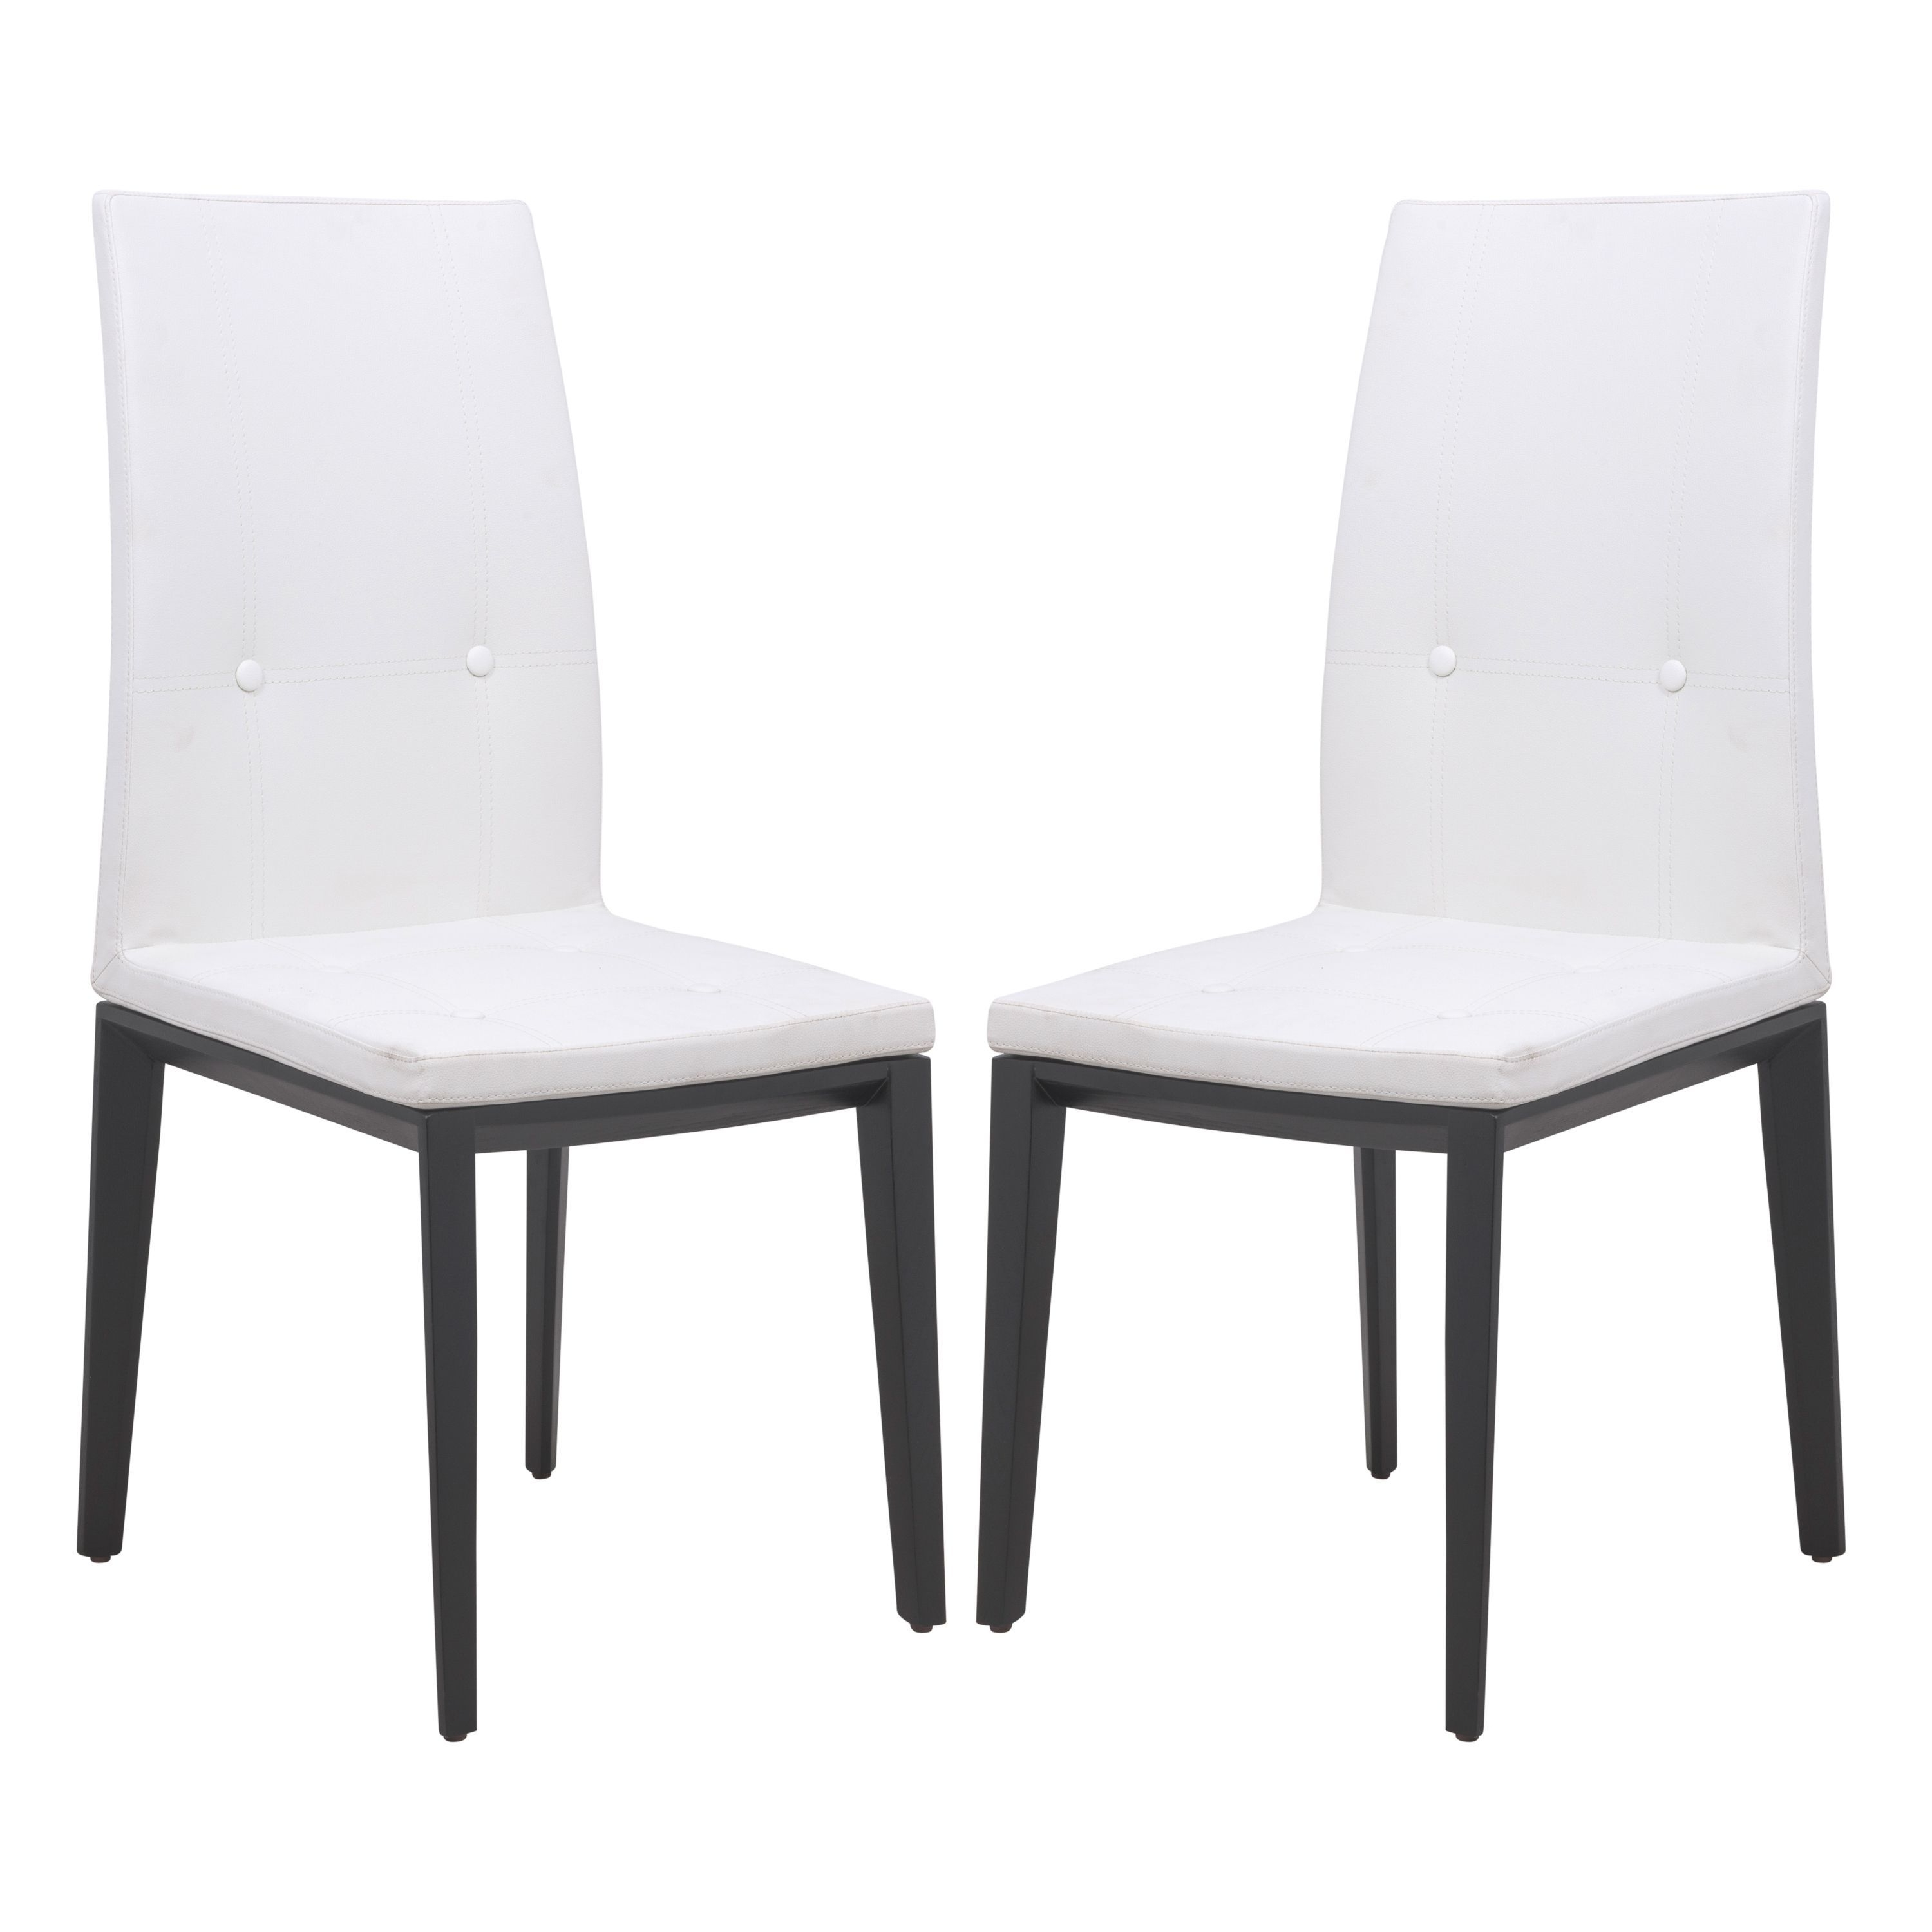 White Leather Dining Room Chairs Within Famous Leisuremod Somers White Faux Leather Dining Chair (Set Of 2) (Dining (View 22 of 25)